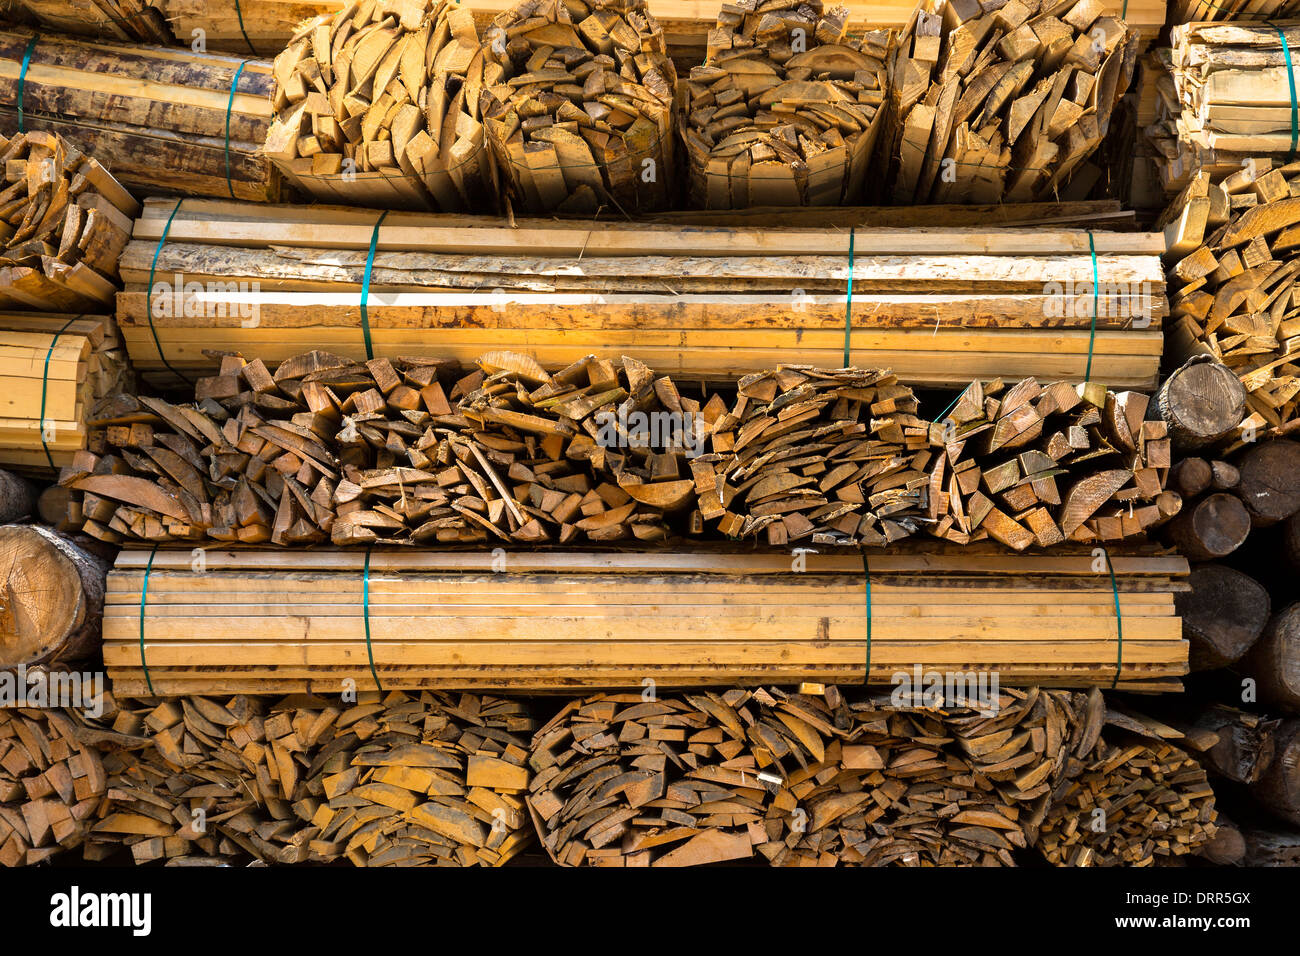 Timber planks, stacked to become seasoned wood at Interlaken in the Bernese Oberland, Switzerland - Stock Image